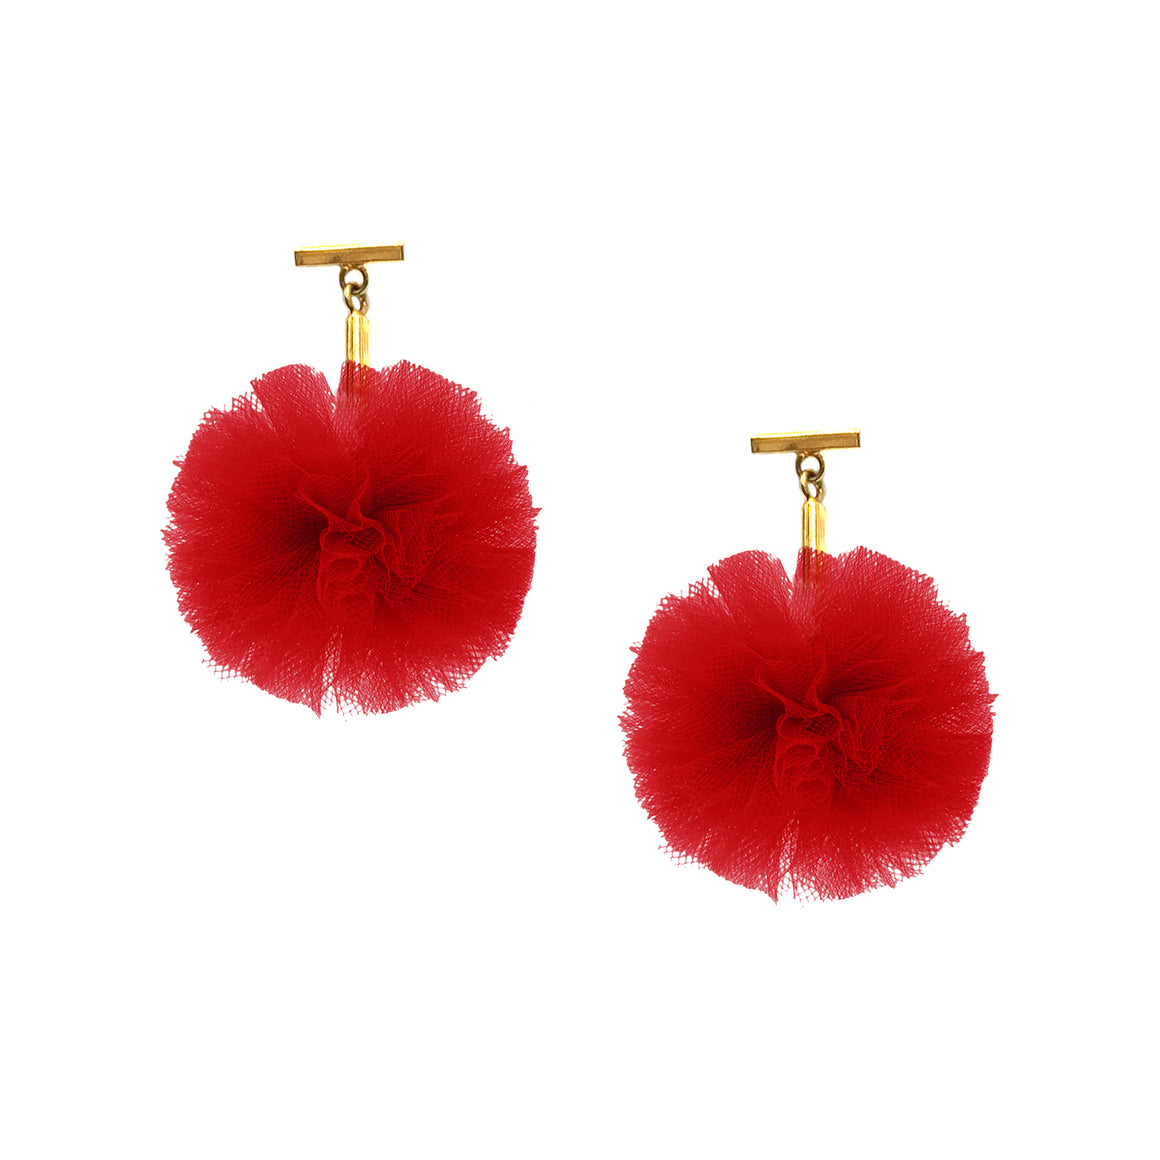 "Red 1"" Tulle Pom Pom T Stud Earrings, Earrings, Tuleste, Tuleste"